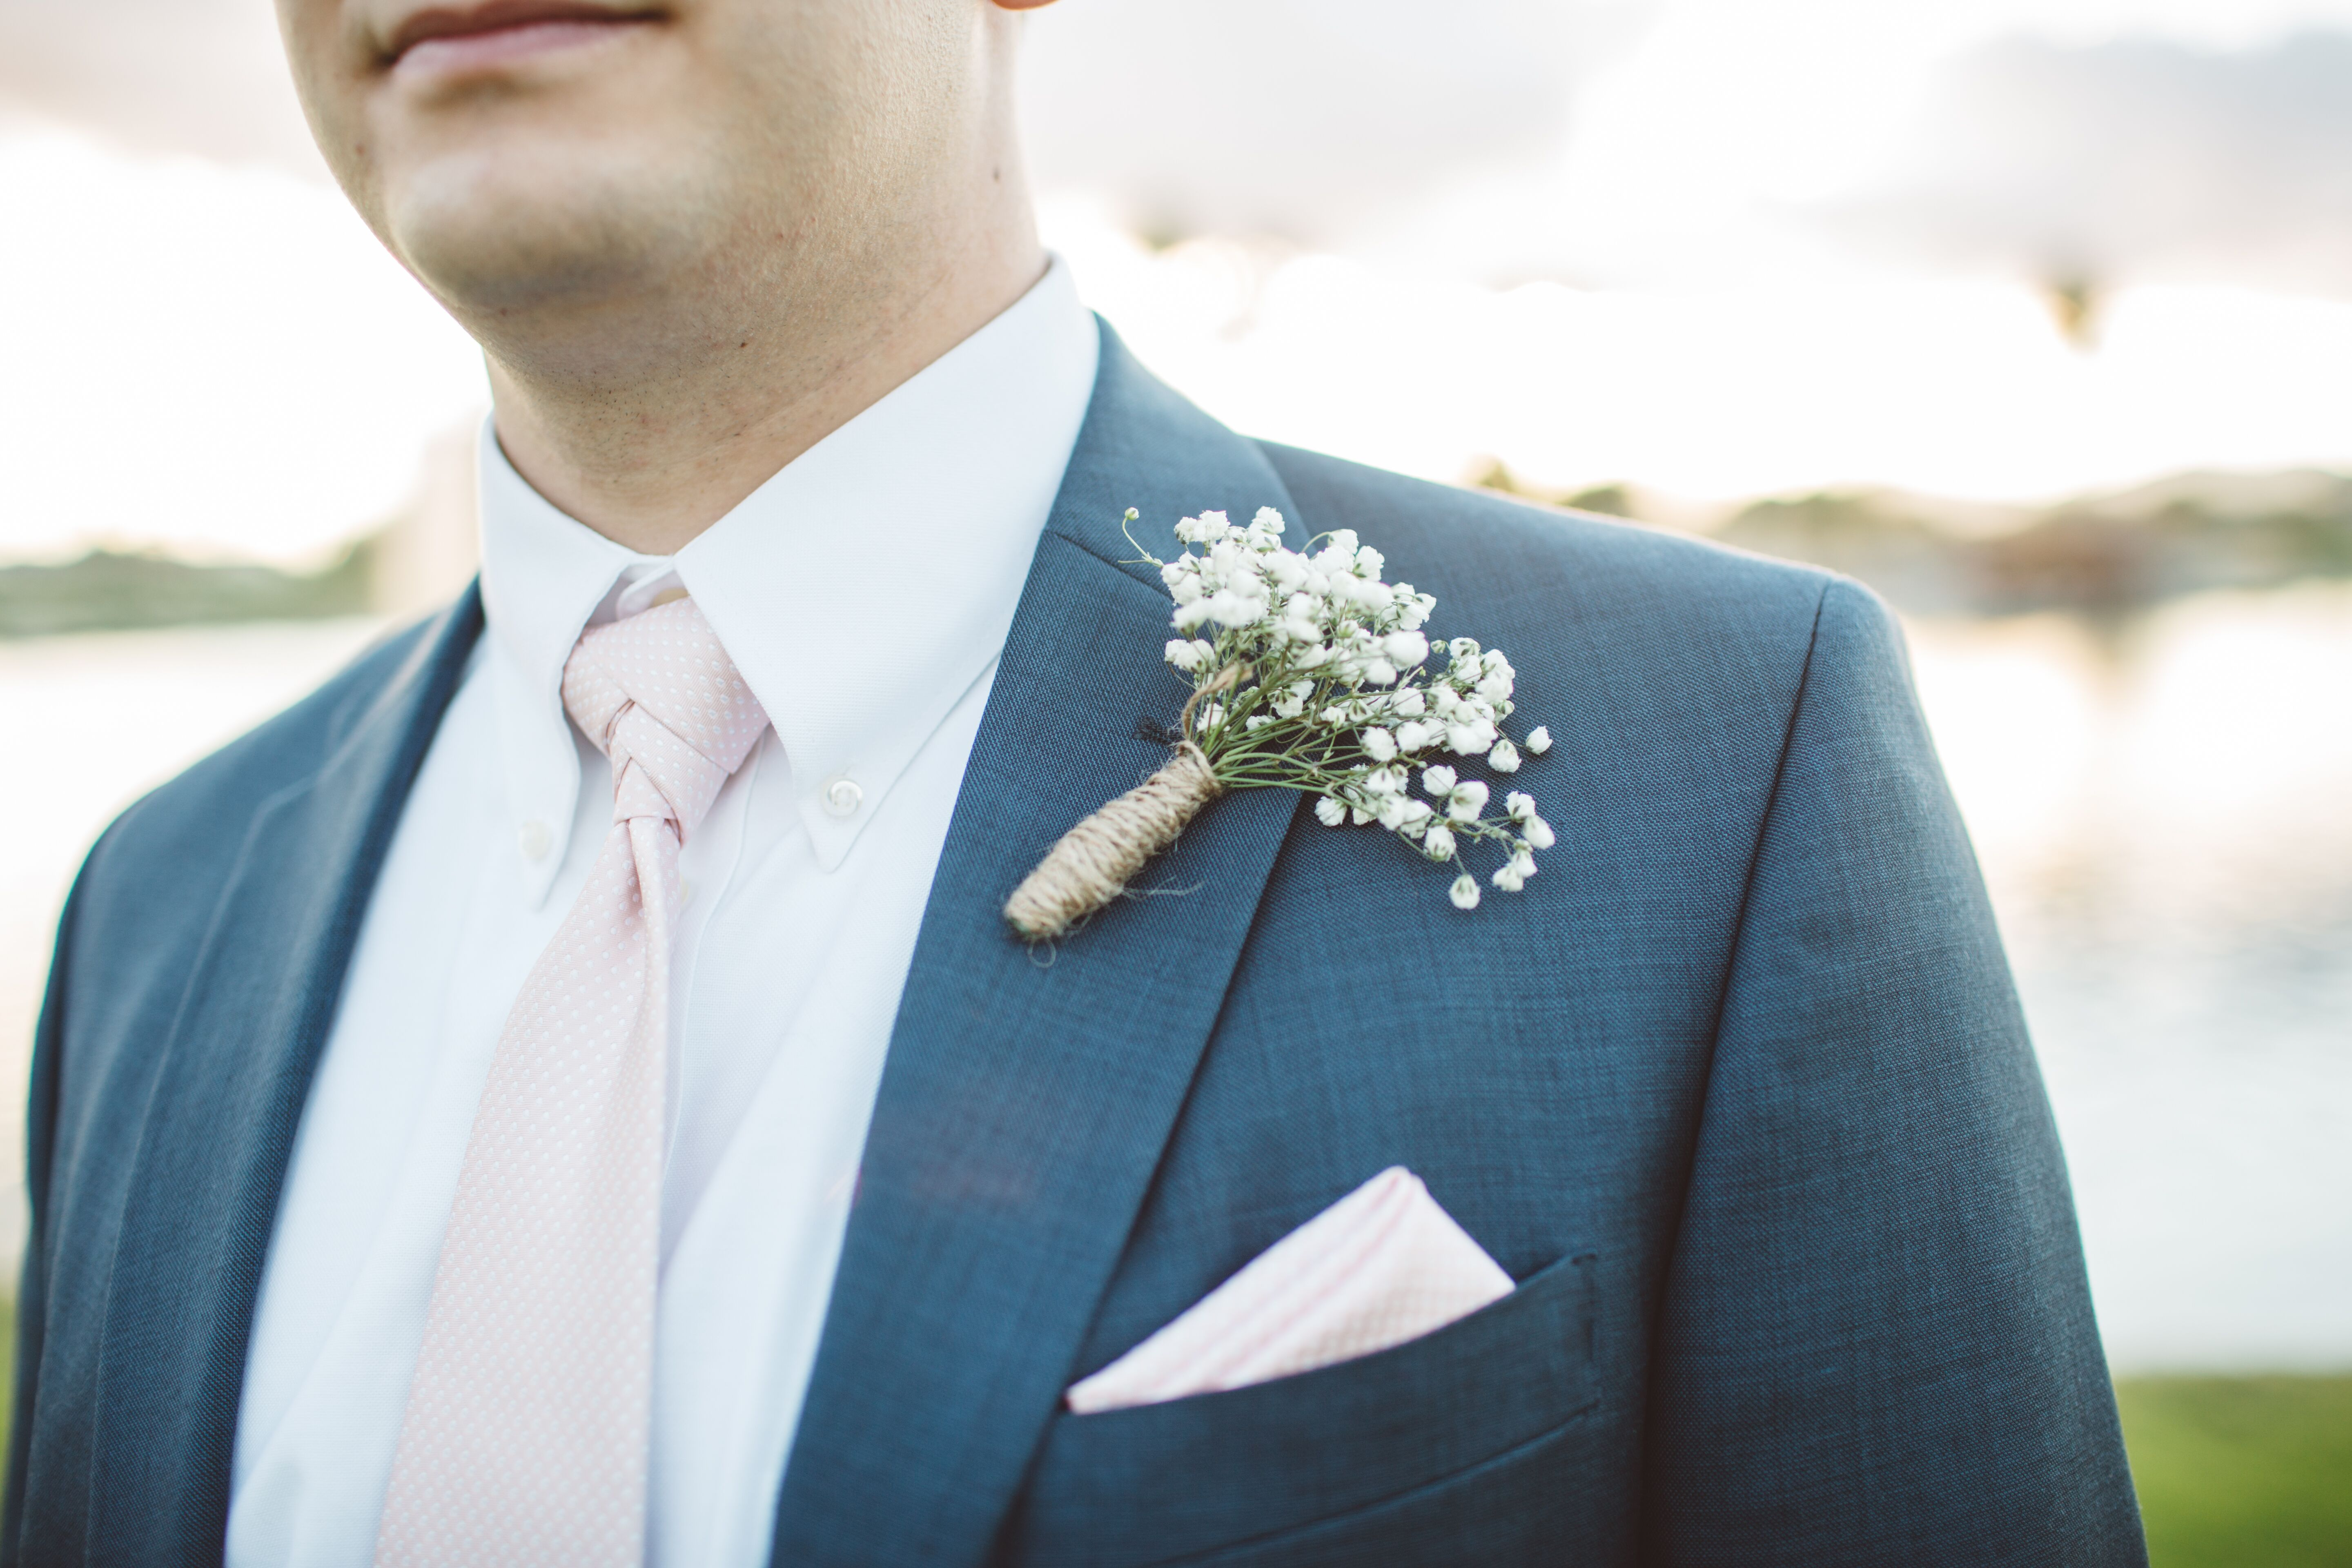 Baby\'s Breath Boutonniere and Blush Tie with Navy Suit